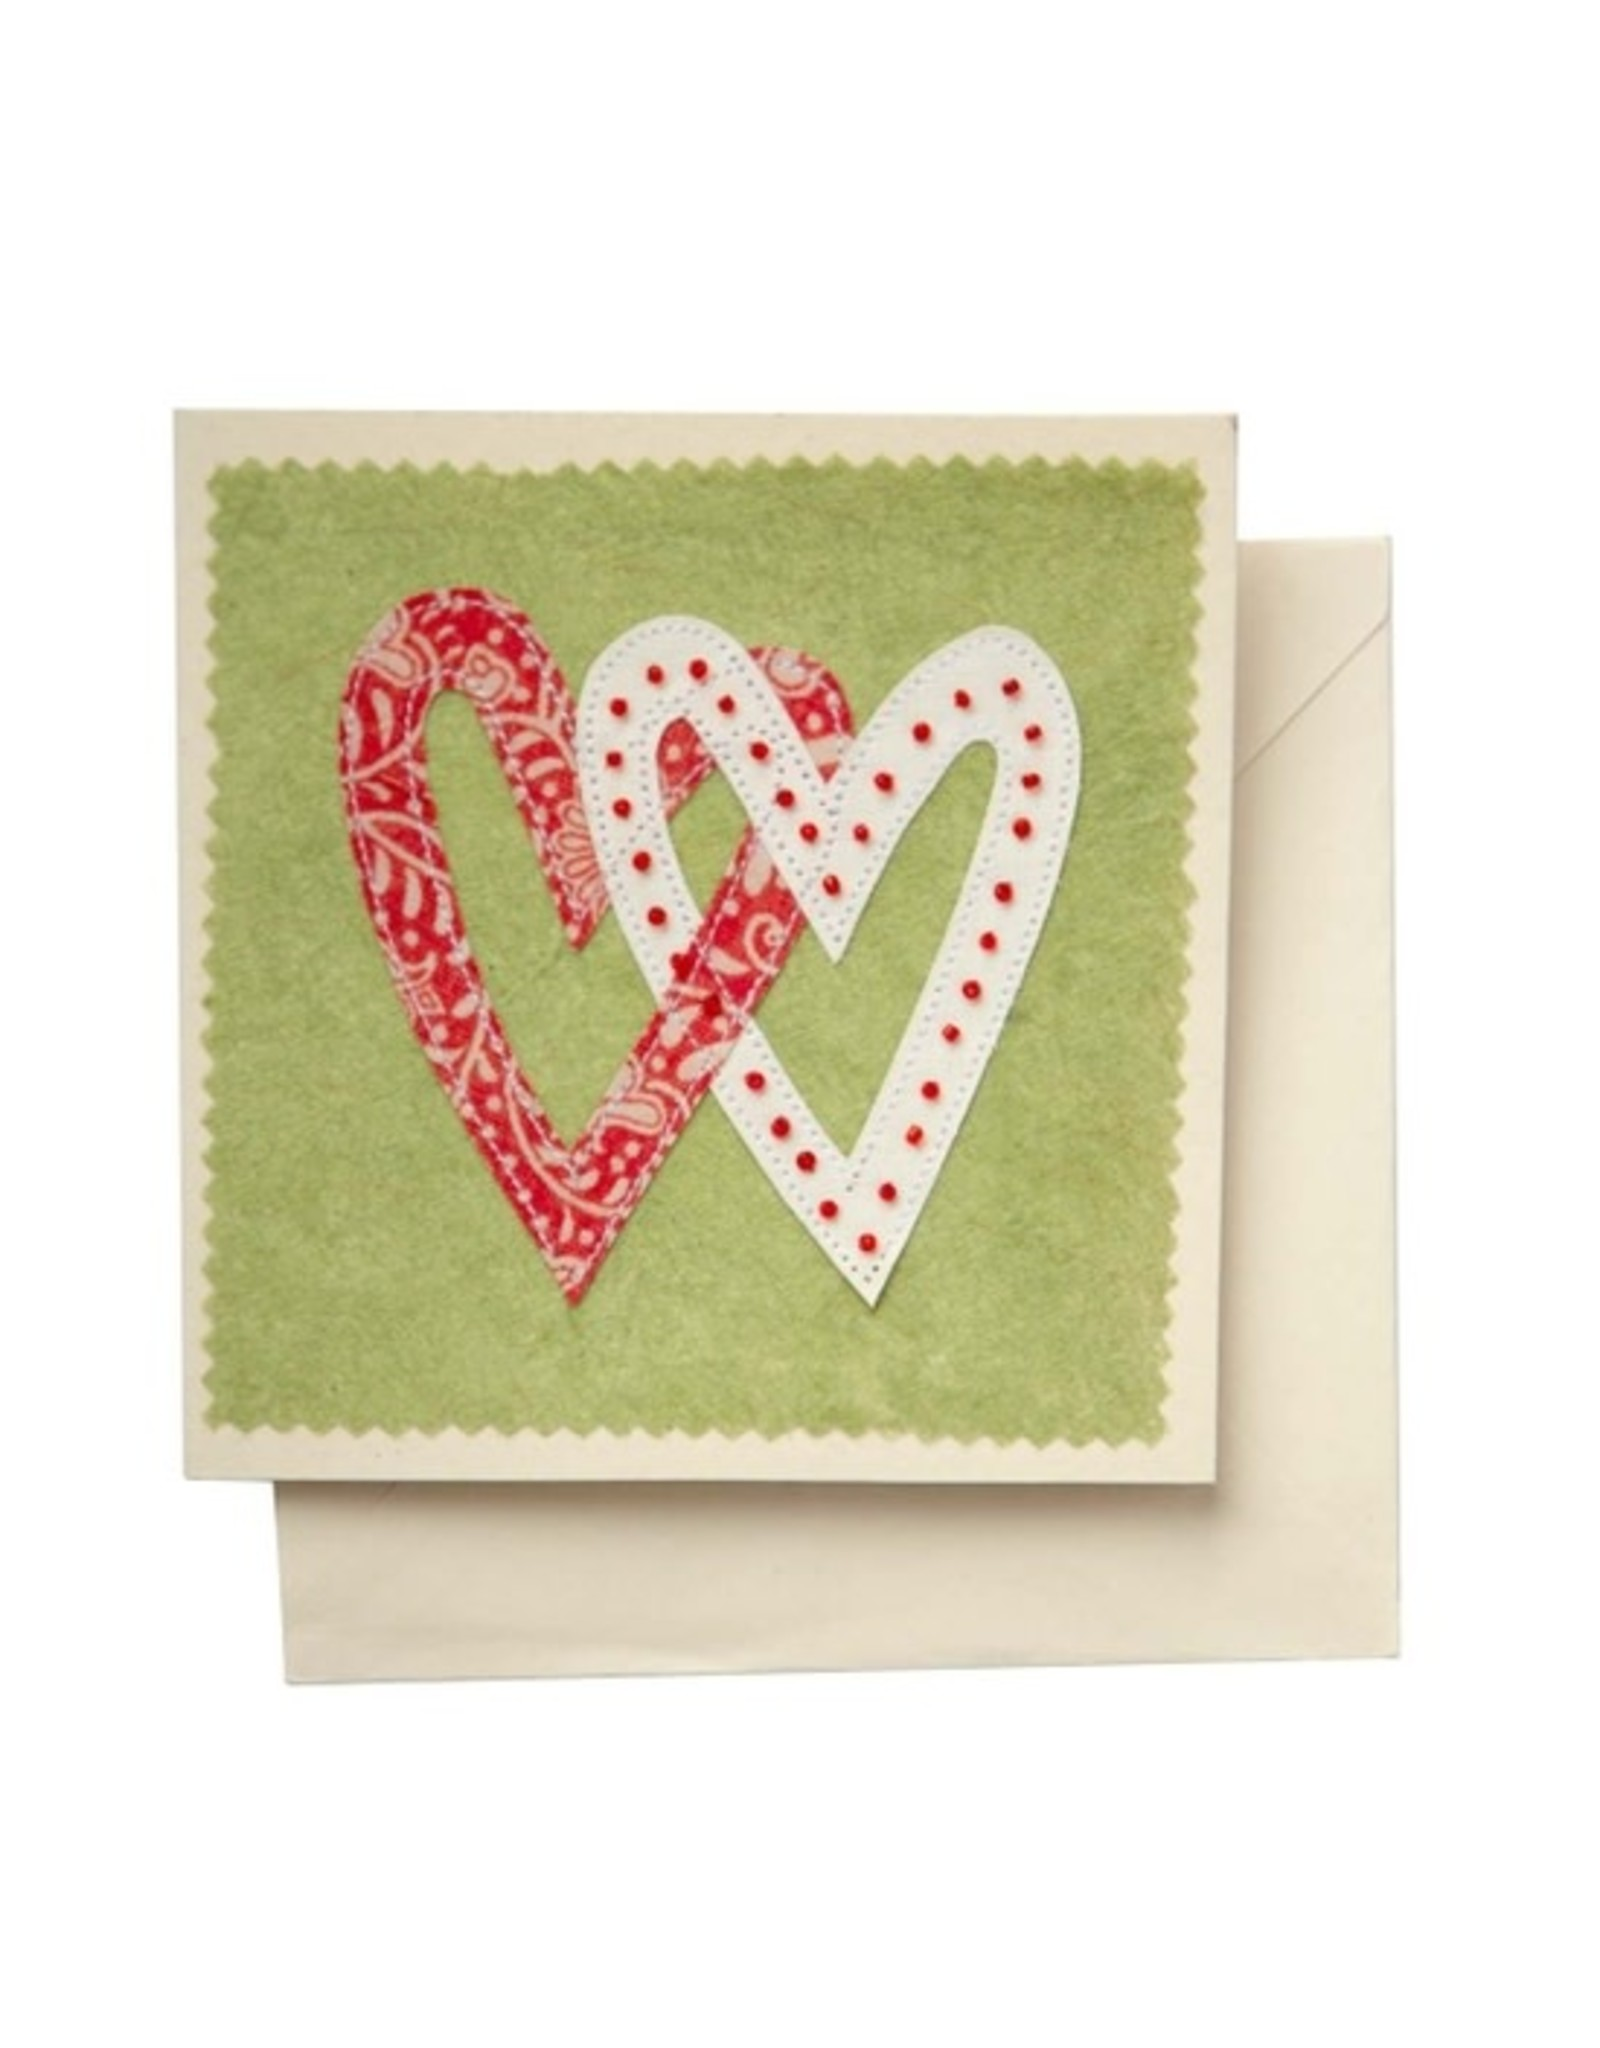 TTV USA Linked Hearts Greeting Card, Bangladesh